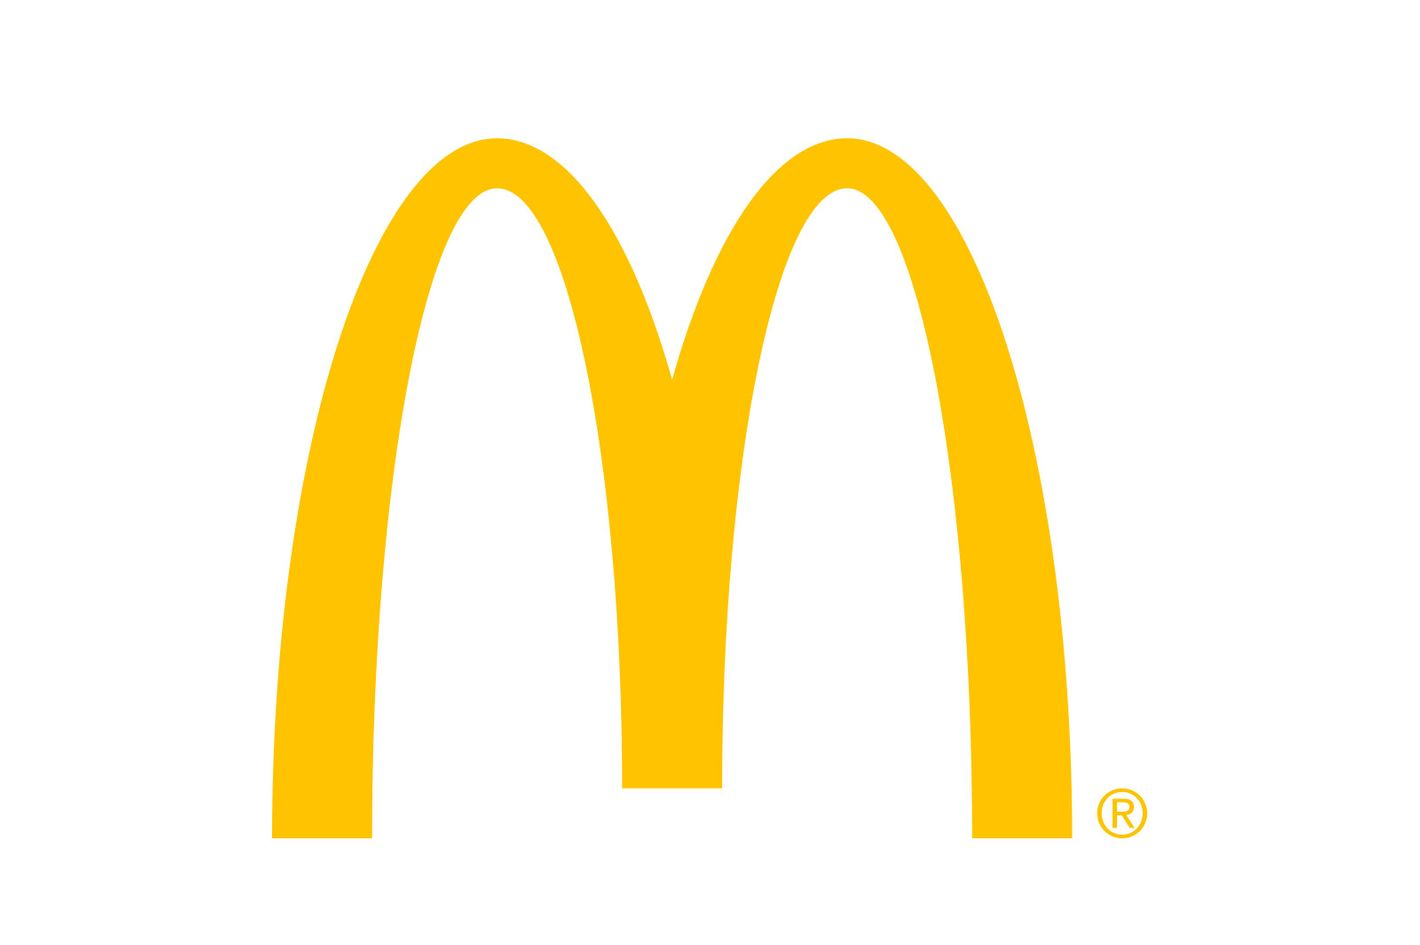 At least the Golden Arches aren't going anywhere.